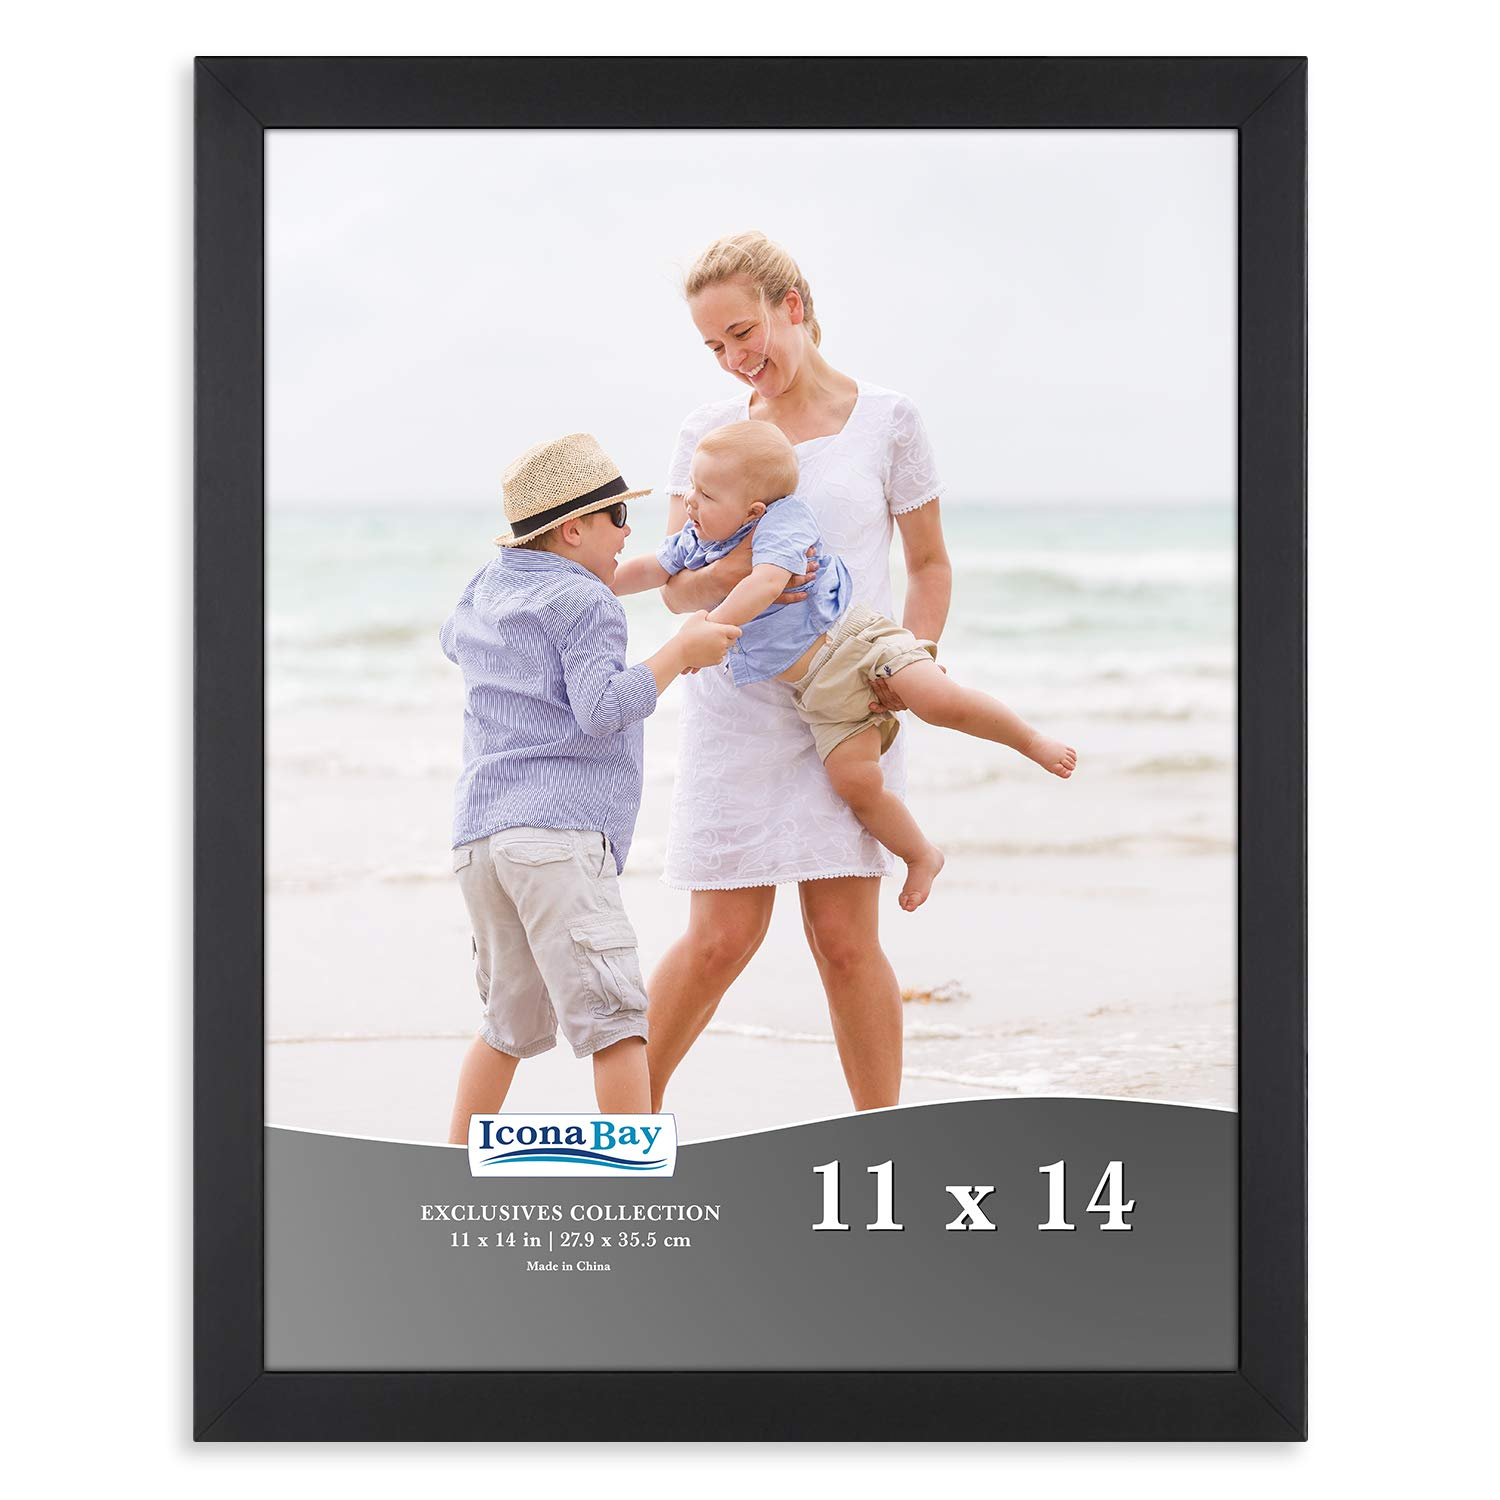 Icona Bay 11x14 Picture Frame (Black) 11 x 14 Photo Frame, Picture Frame 11x14, Exclusives Collection